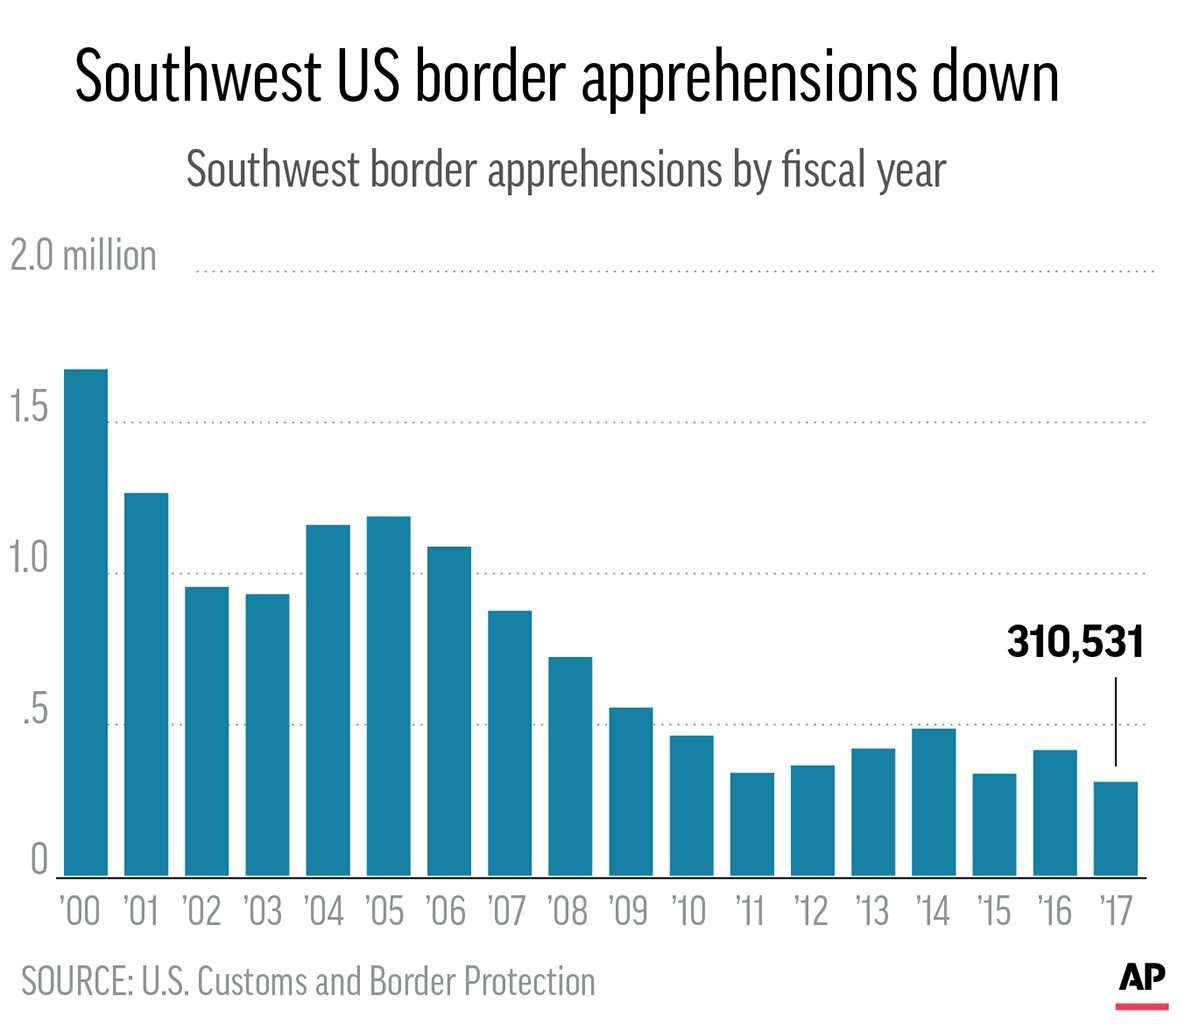 SOUTHWEST BORDER APPREHENSIONS